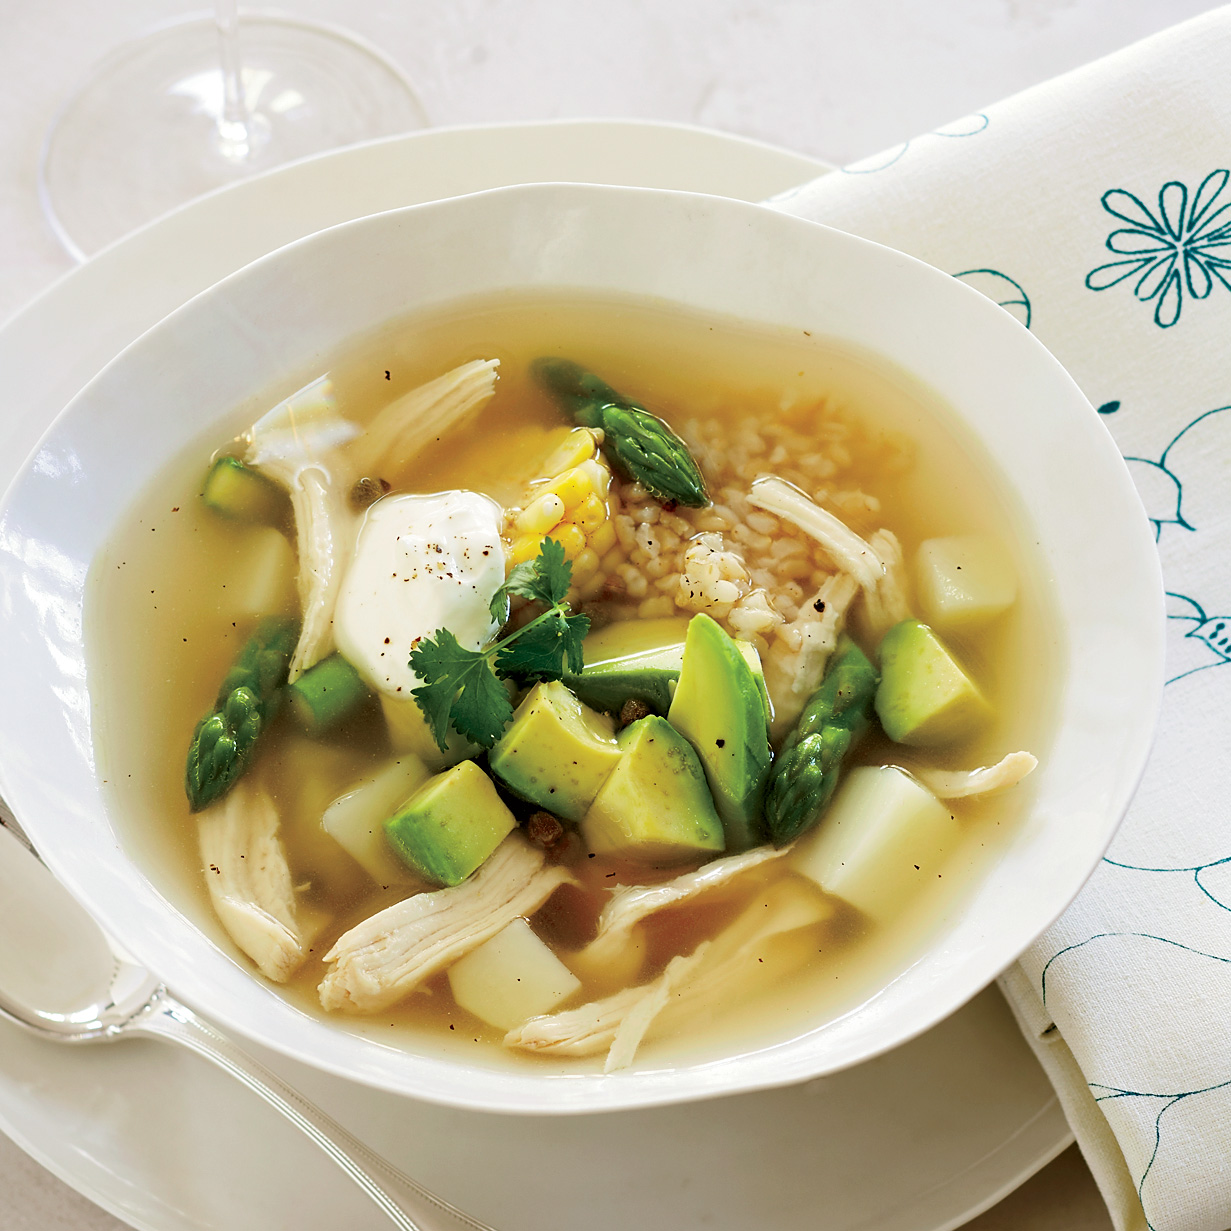 200905-r-chicken-soup.jpg